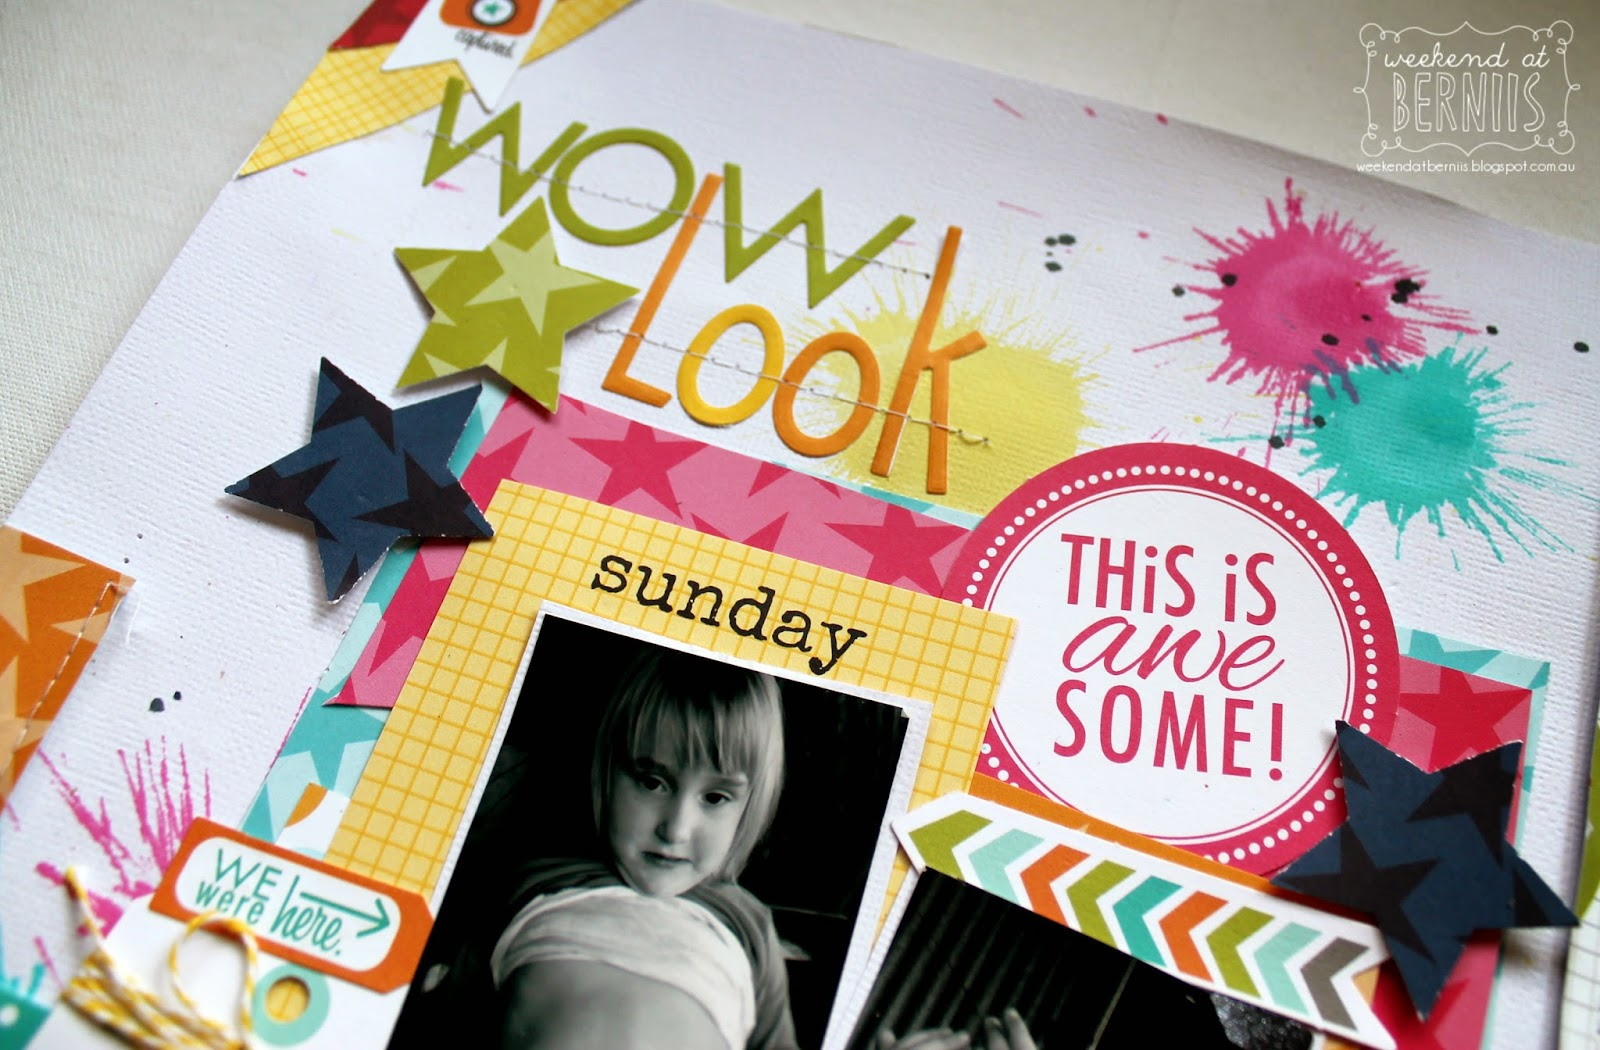 WOW LOOK layout by Bernii Miller using Bella Blvd papers.